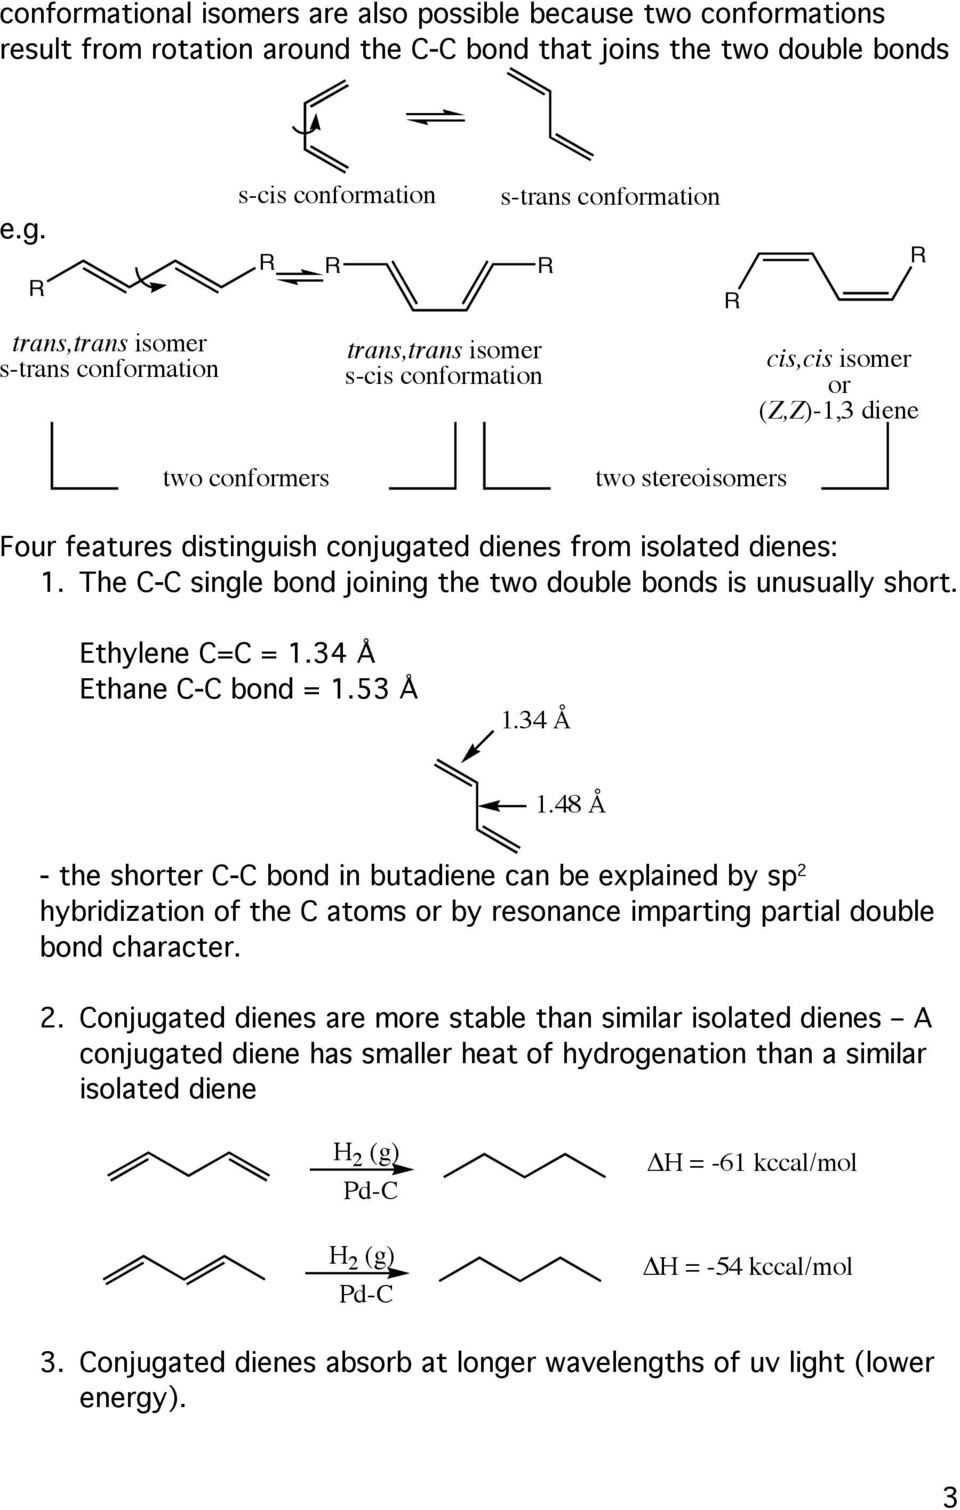 distinguish conjugated dienes from isolated dienes 1. The C-C single bond joining the two double bonds is unusually short. Ethylene C=C = 1.34 Å Ethane C-C bond = 1.53 Å 1.34 Å 1.